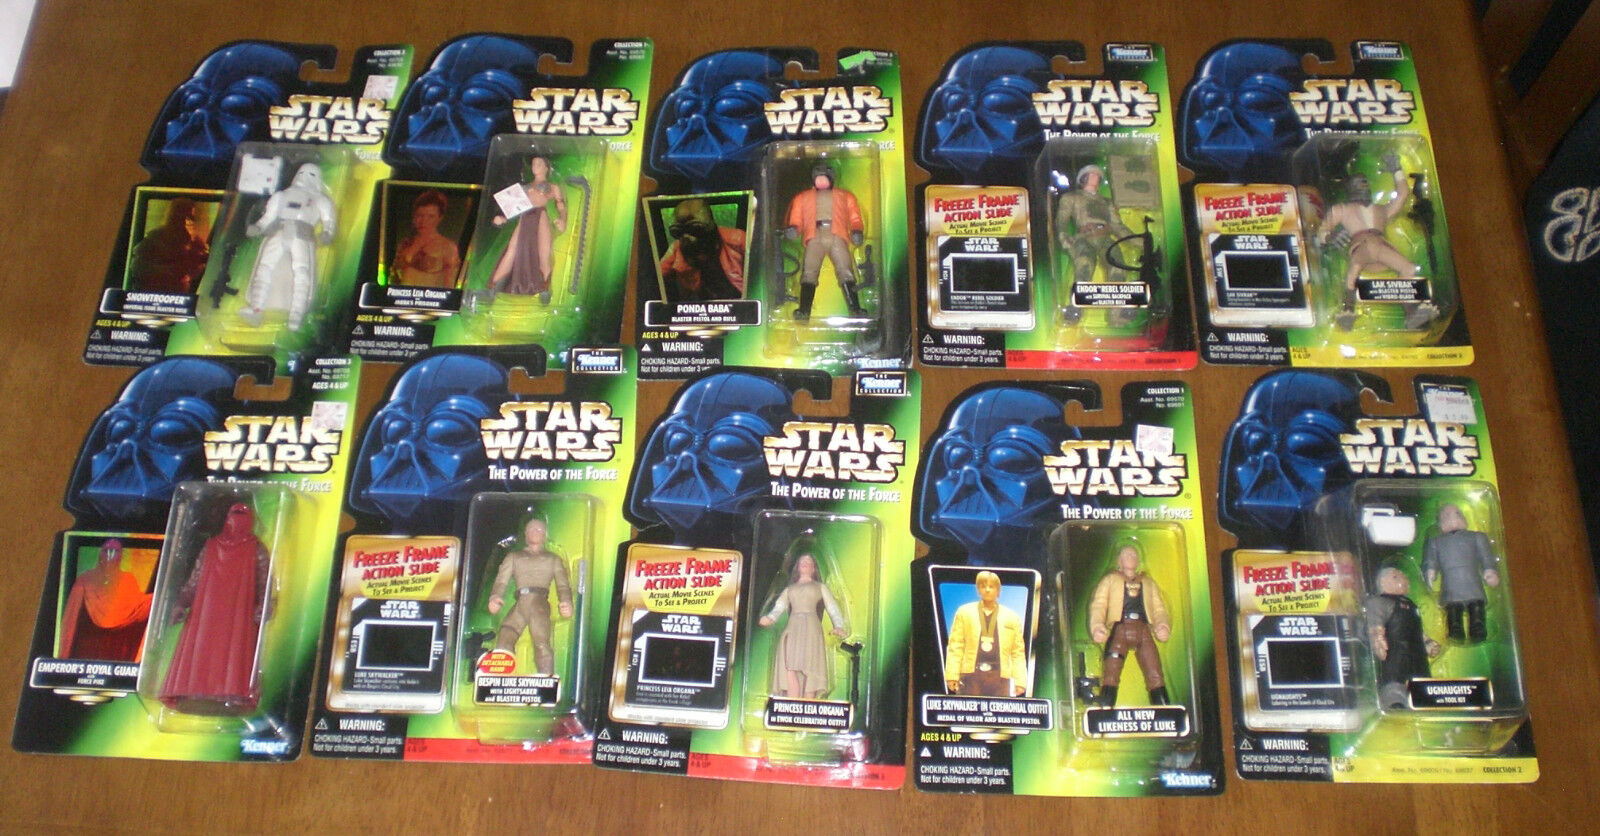 10 STAR WARS POWER OF THE FORCE ACTION FIGURES LEIA PONDA BABA SNOWTROOPER LUKE